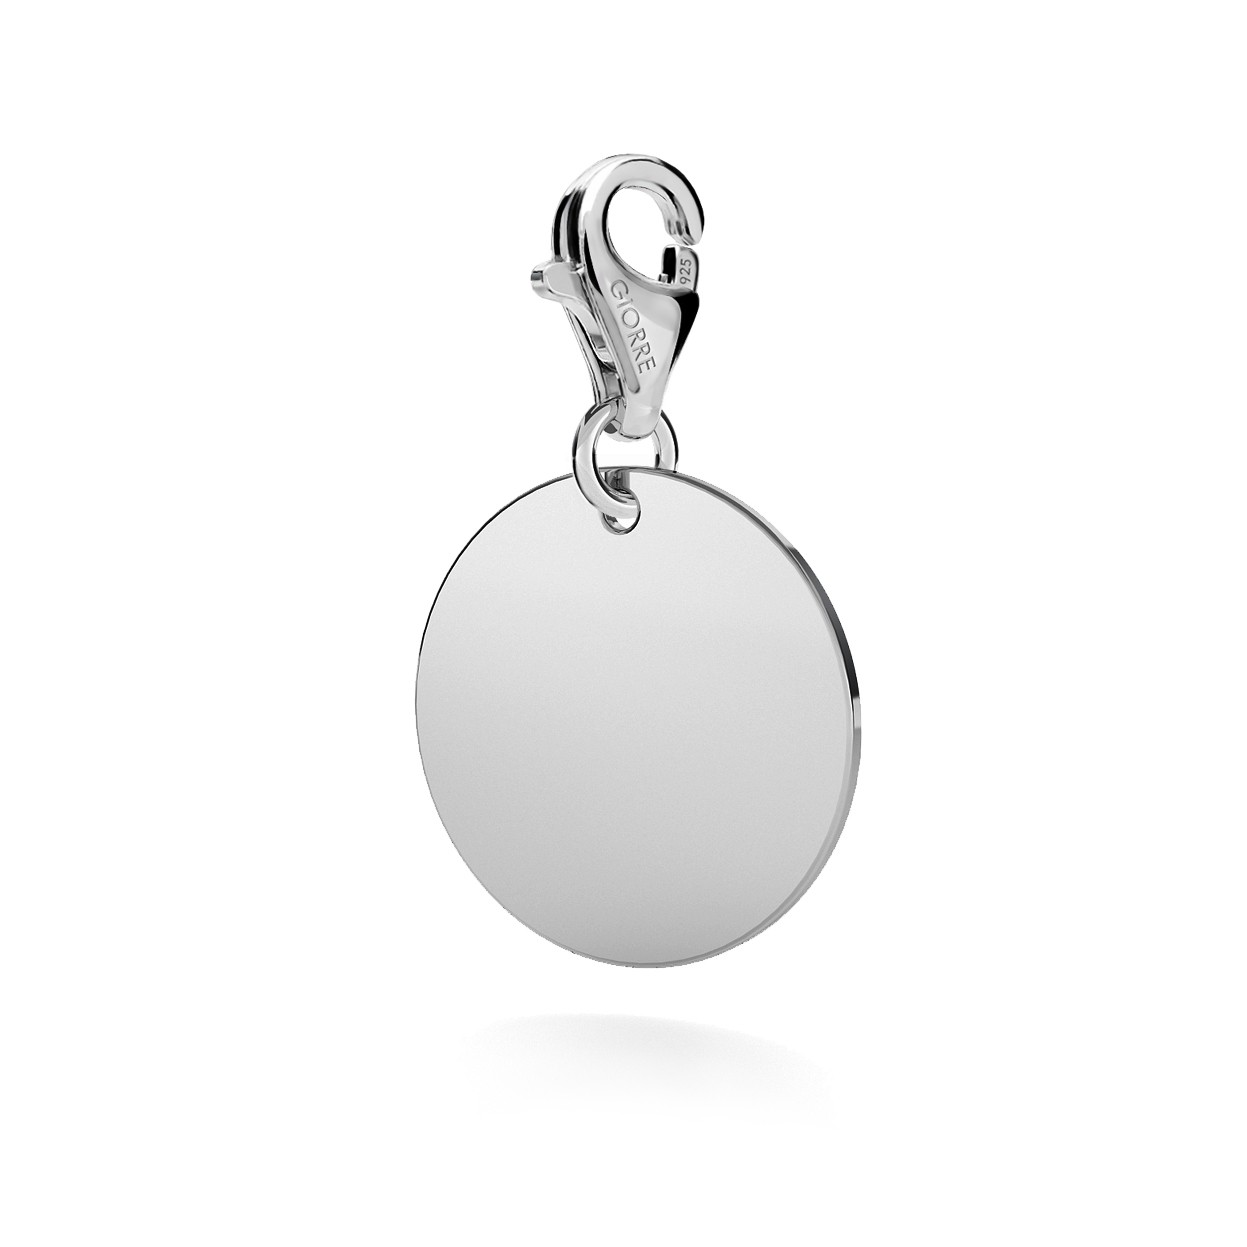 CHARM WITH ENGRAVE, RING, SILVER 925,  RHODIUM OR GOLD PLATED